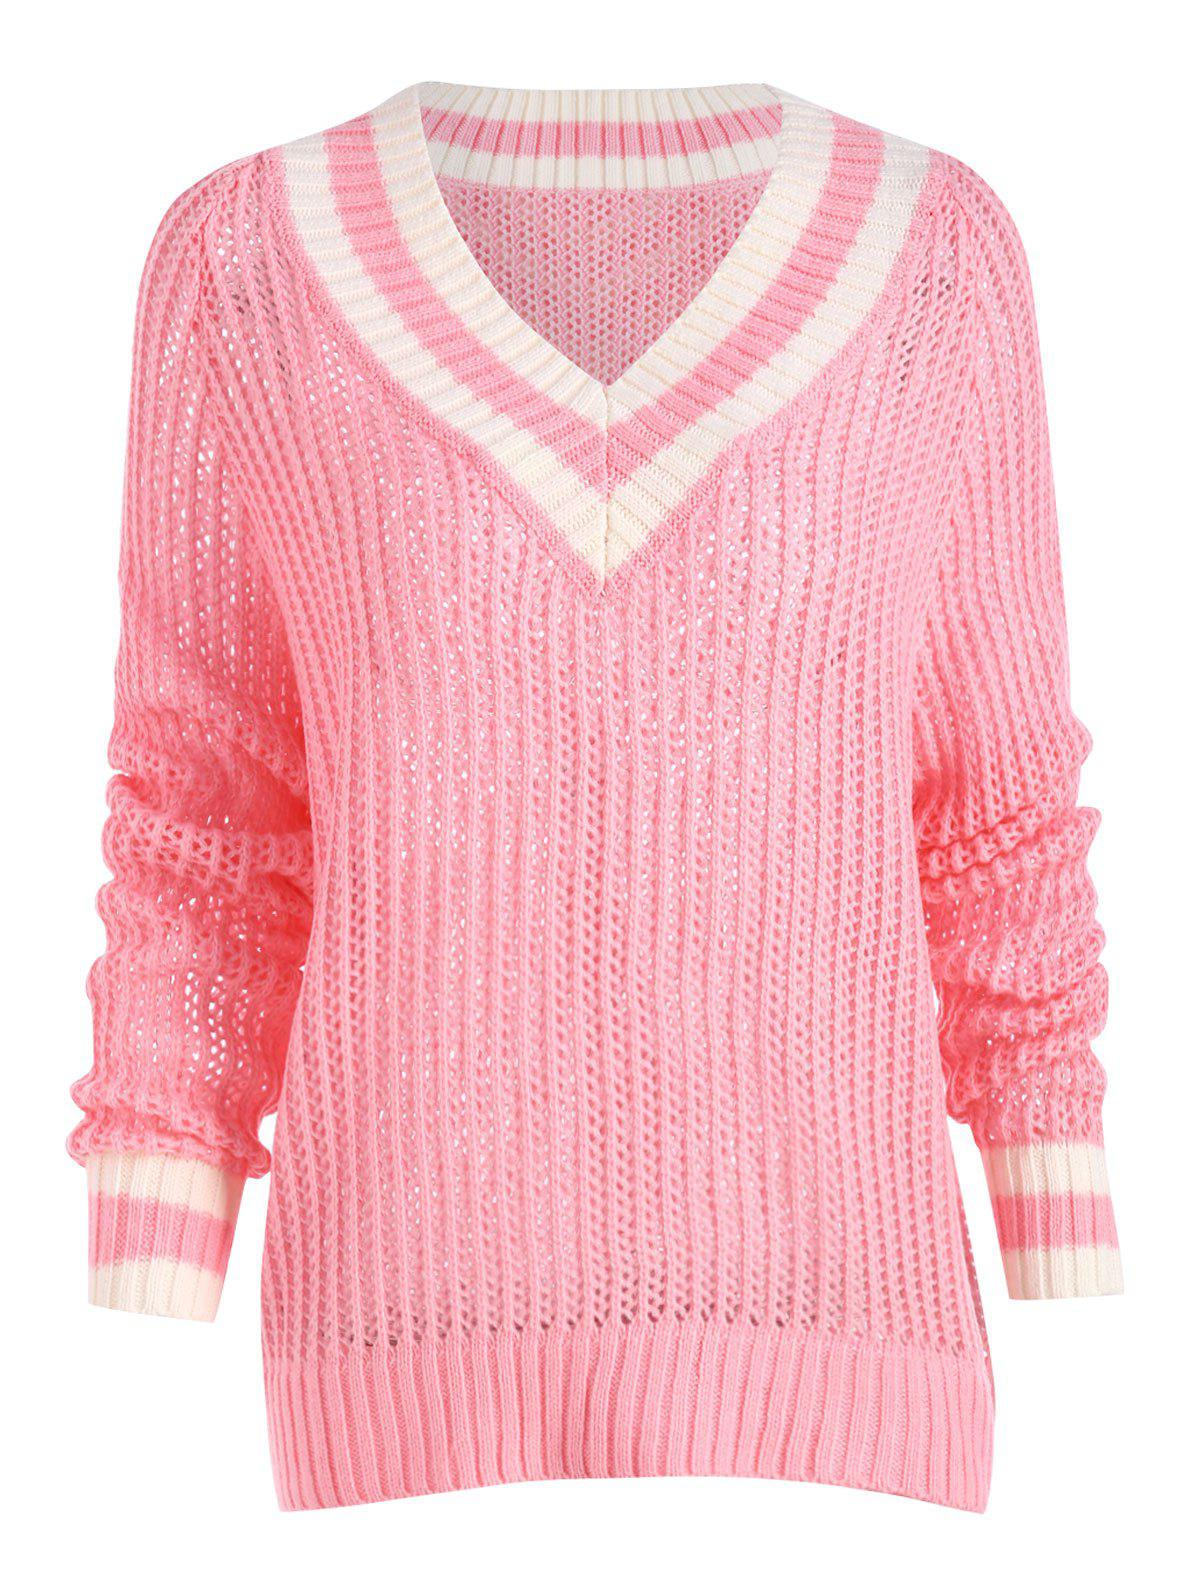 Chunky Knit High Low Tennis Plus Size Sweater - PINK 2XL